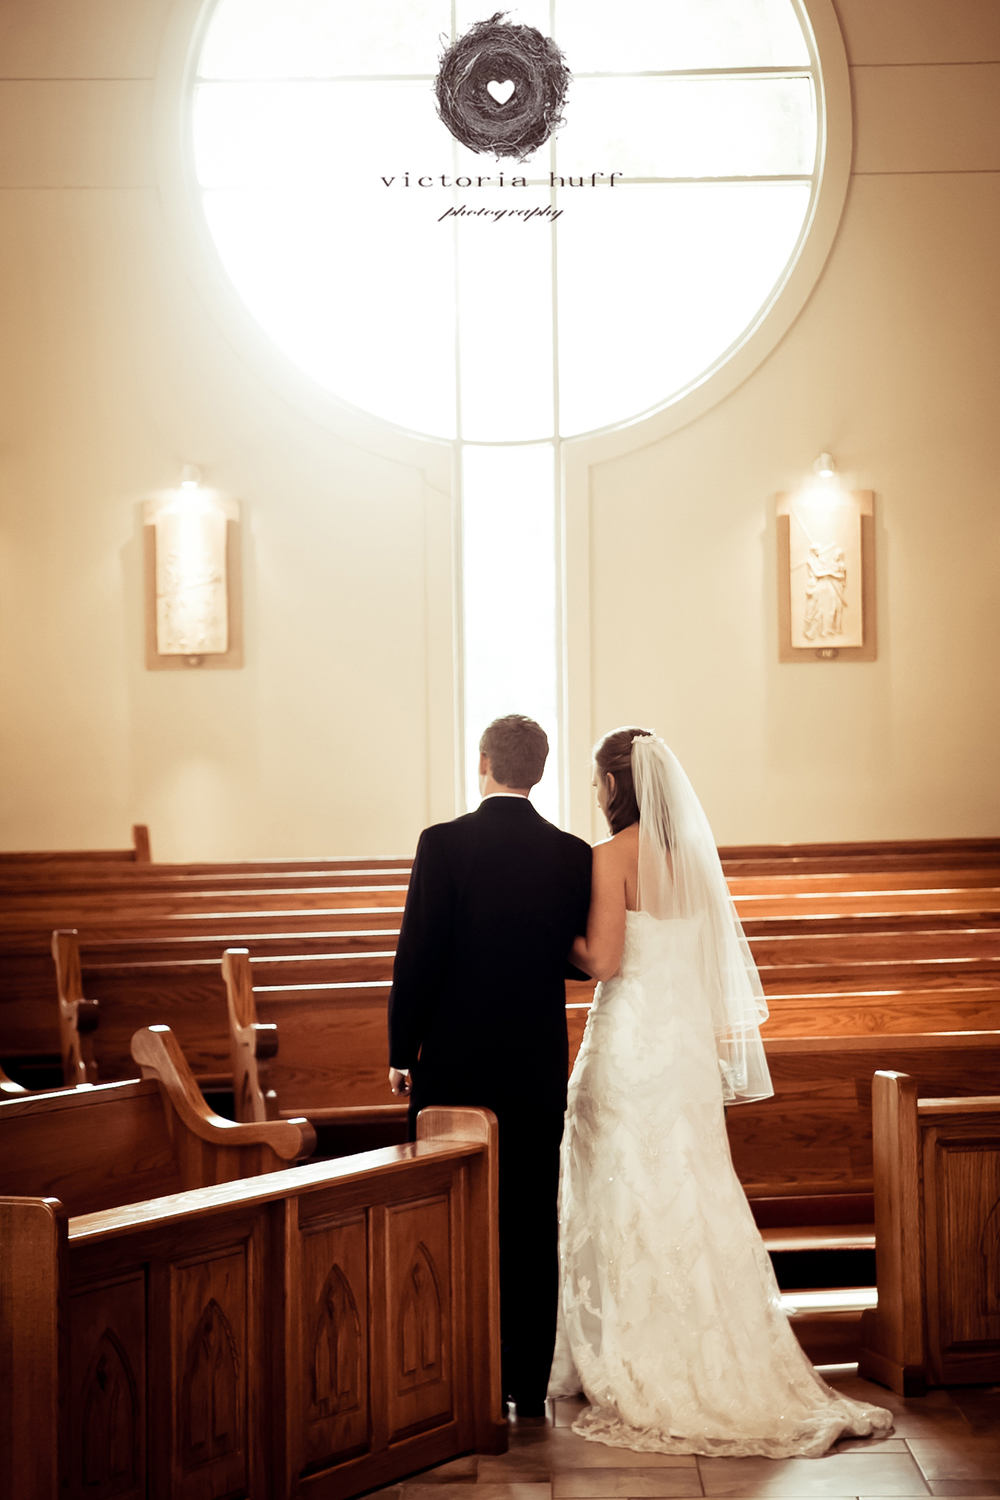 Wedding-Photography-Anna-Bloodworth-Entz-Catholic-Acworth-Georgia-Wedding-0765_2.jpg